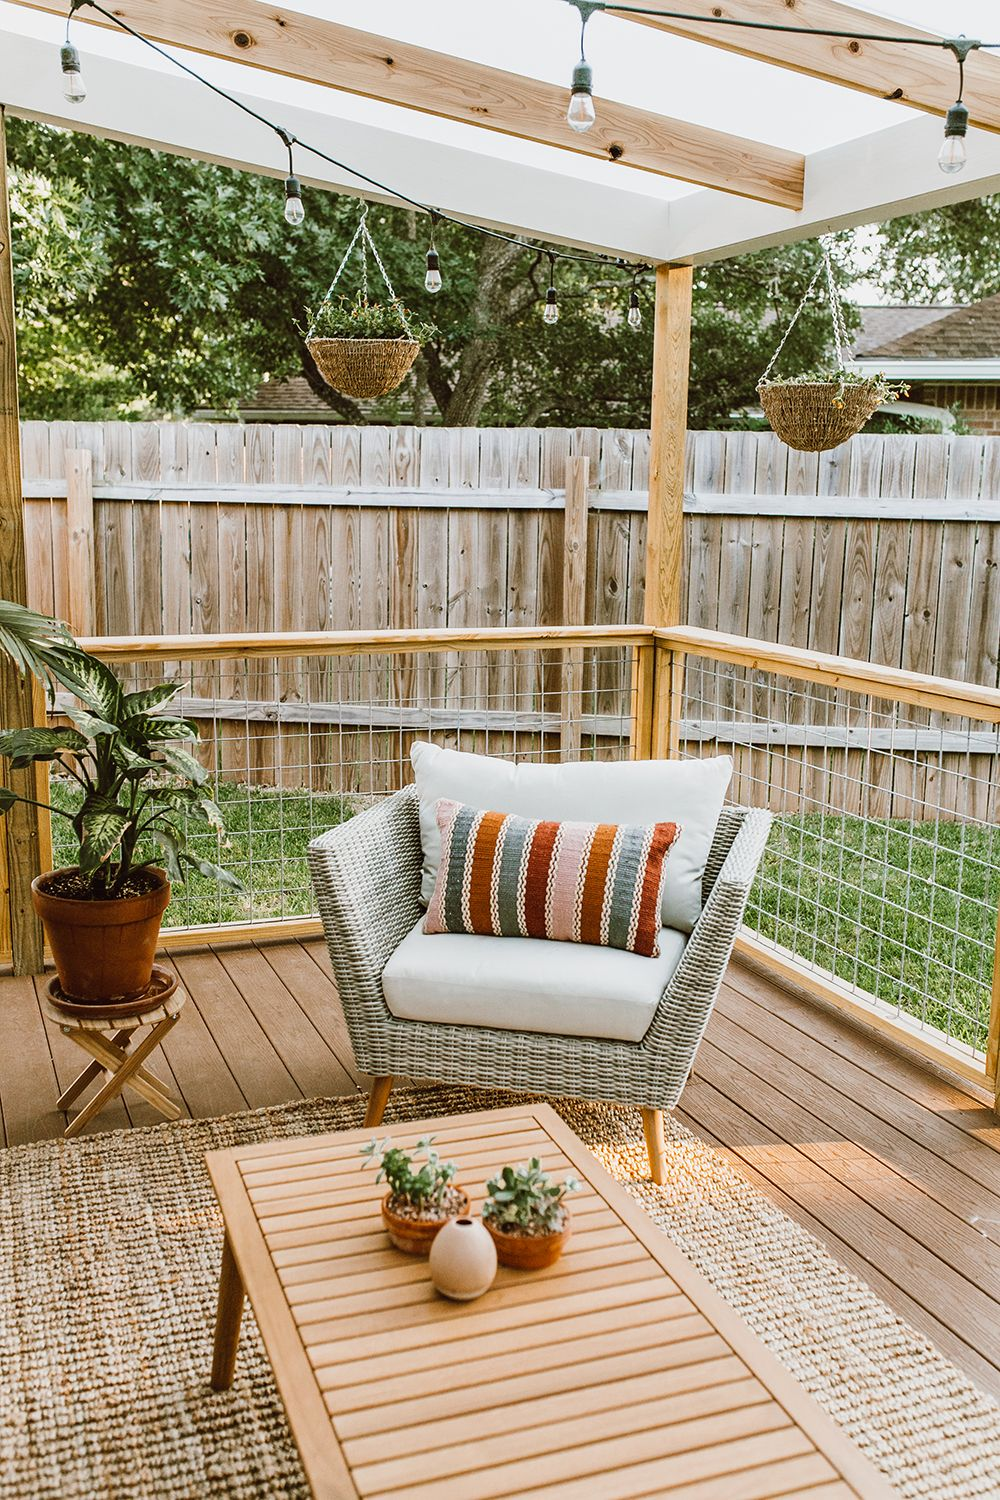 Before After Patio Renovation Reveal Livvyland Outdoor Living Rooms Small Patio Design Patio Design